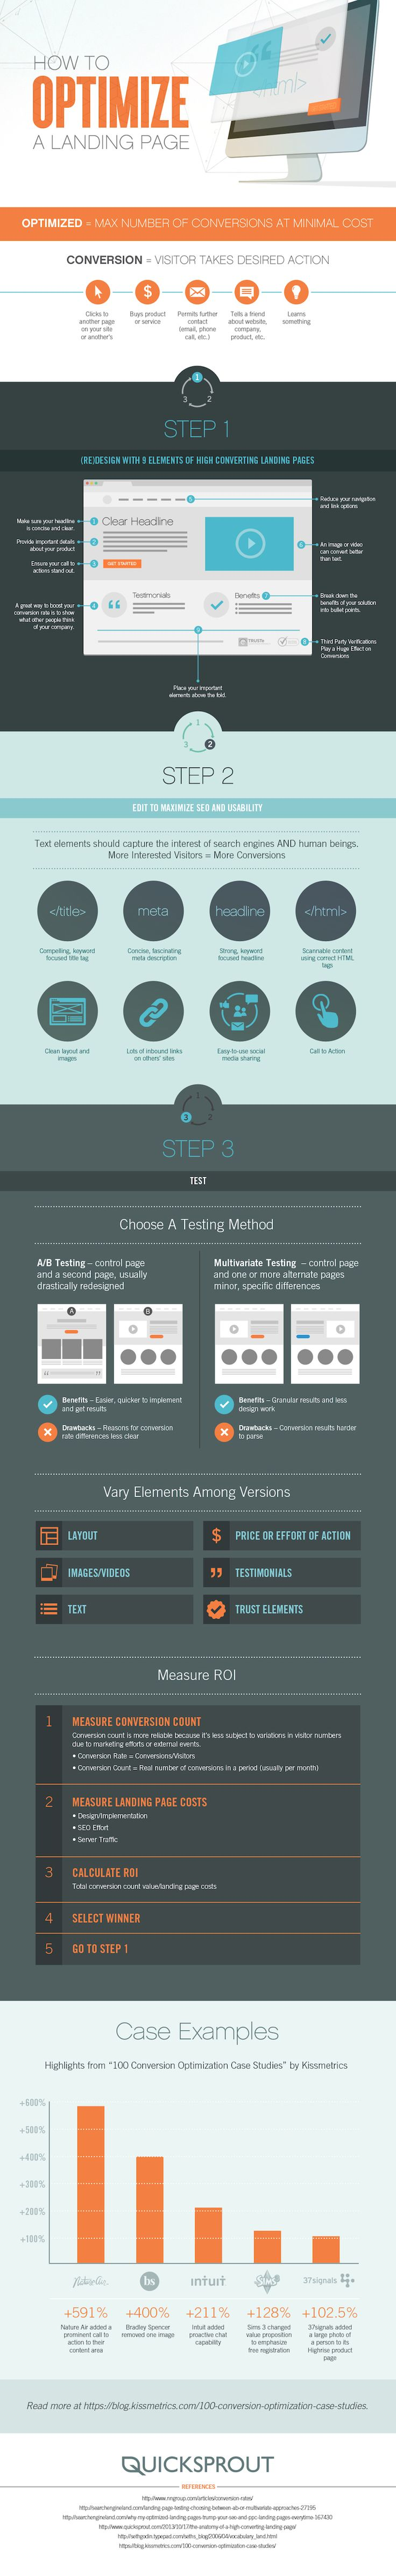 How to Optimize a Landing Page - Infographic #cro #landingpageoptimization